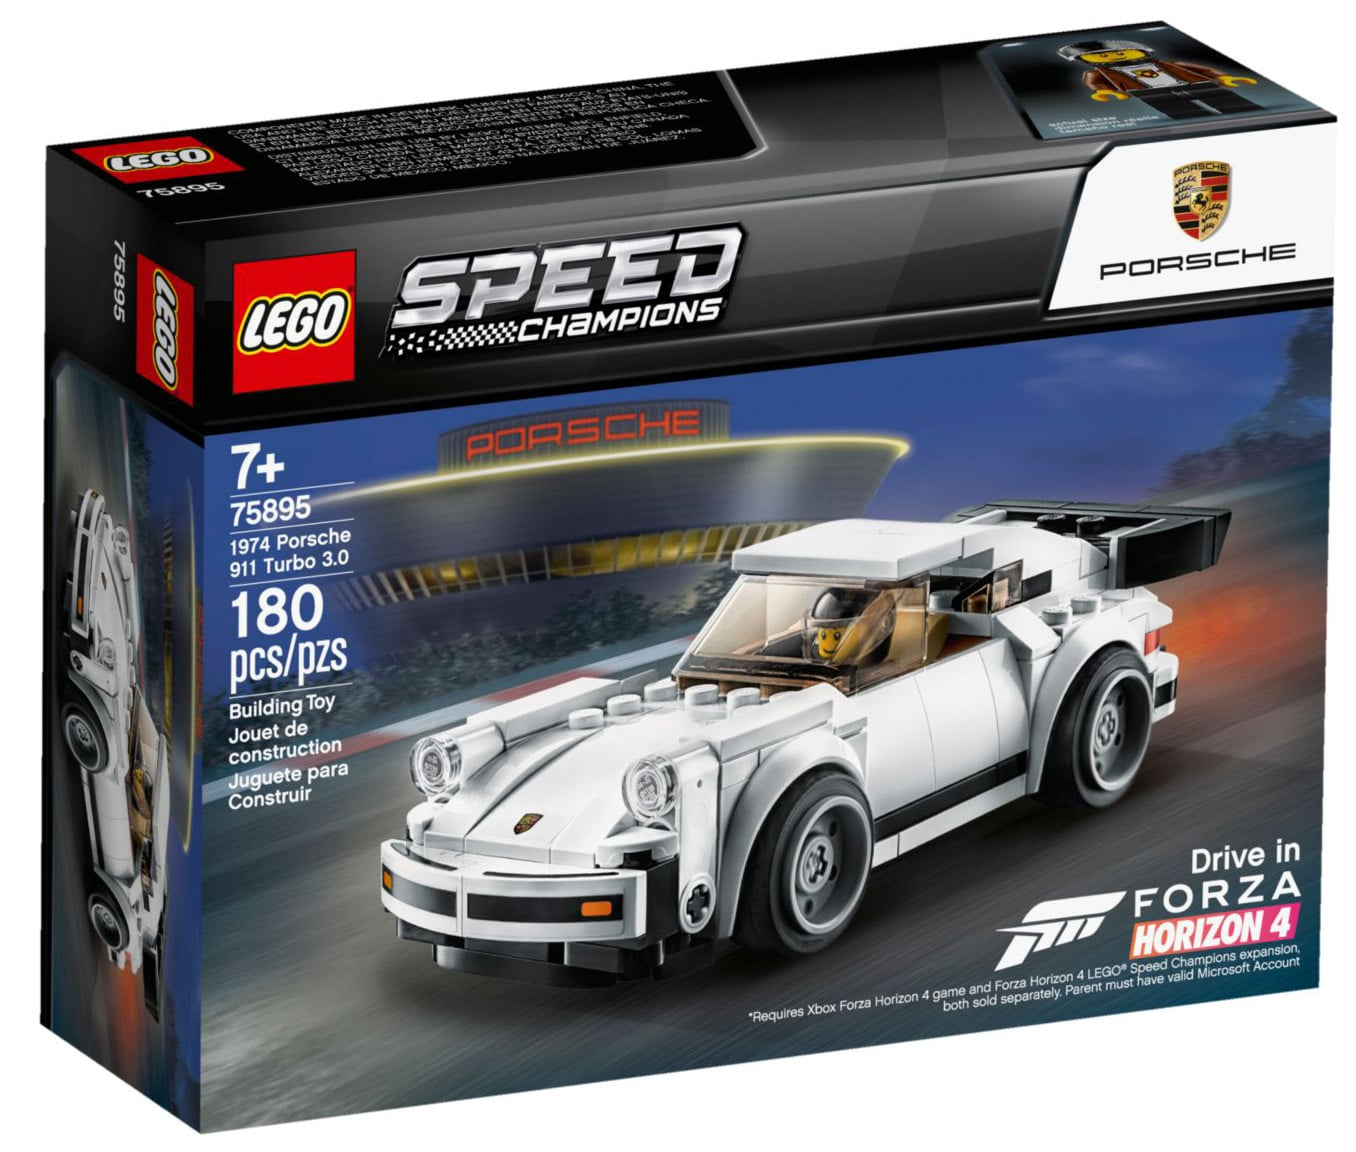 LEGO Speed Champions 75985 1974 Porsche 911 Turbo 3.0